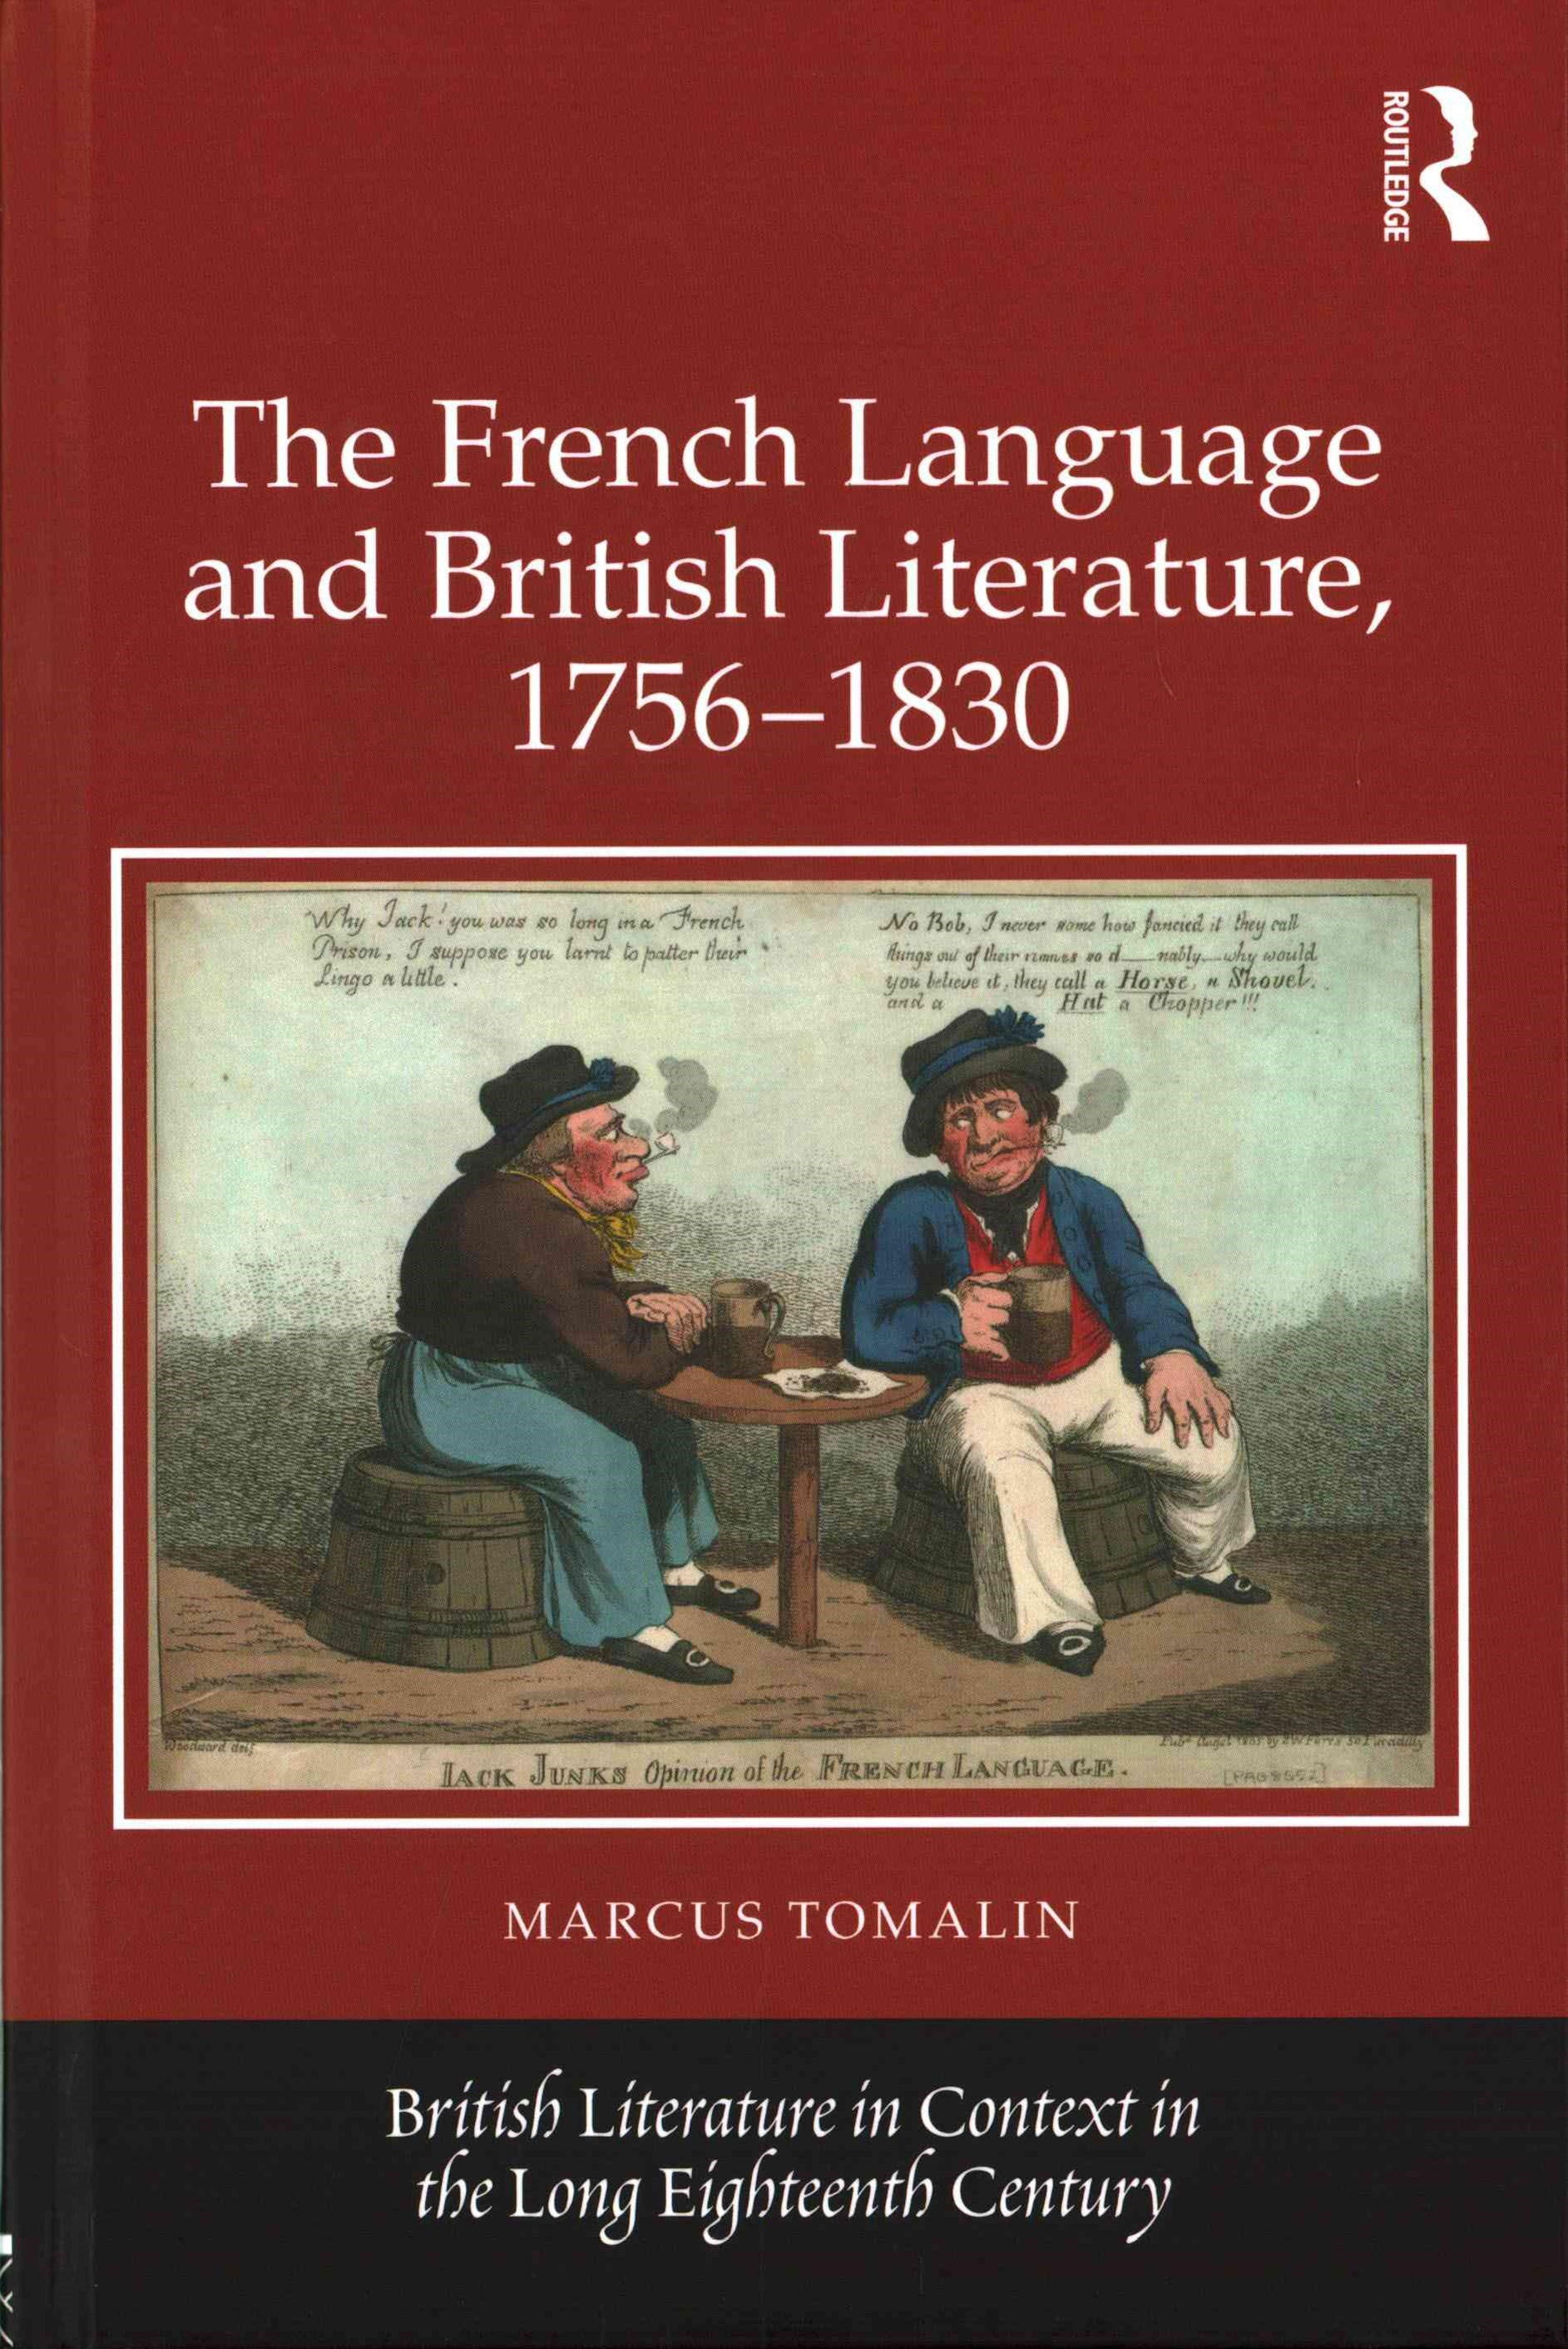 French Language and British Literature, 1756-1830